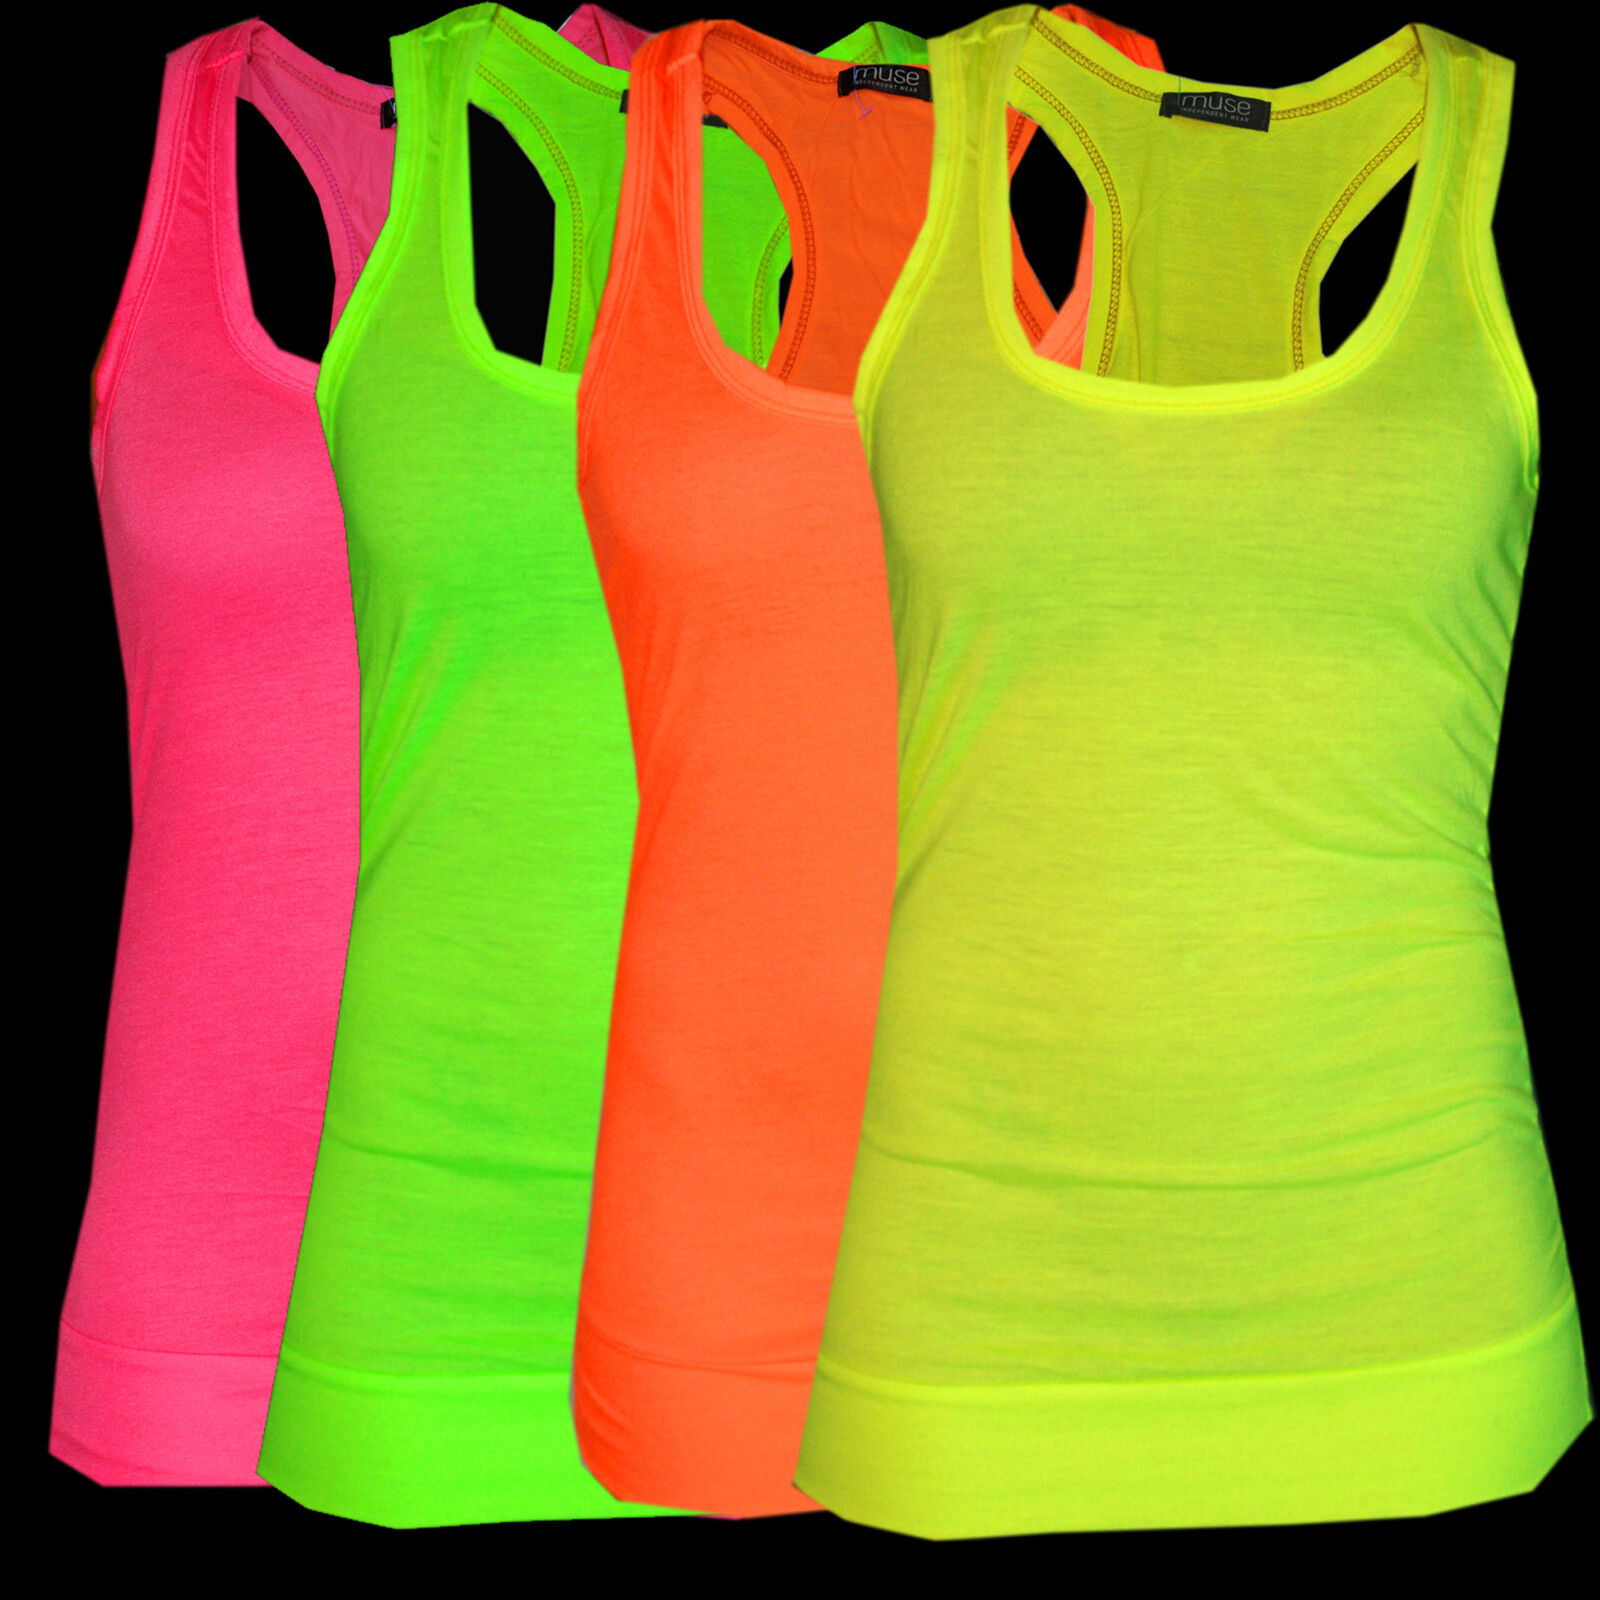 Tops, Tank Top, Top, neon, neon gelb, neon pink, neon orange, One-Size 34 36 38